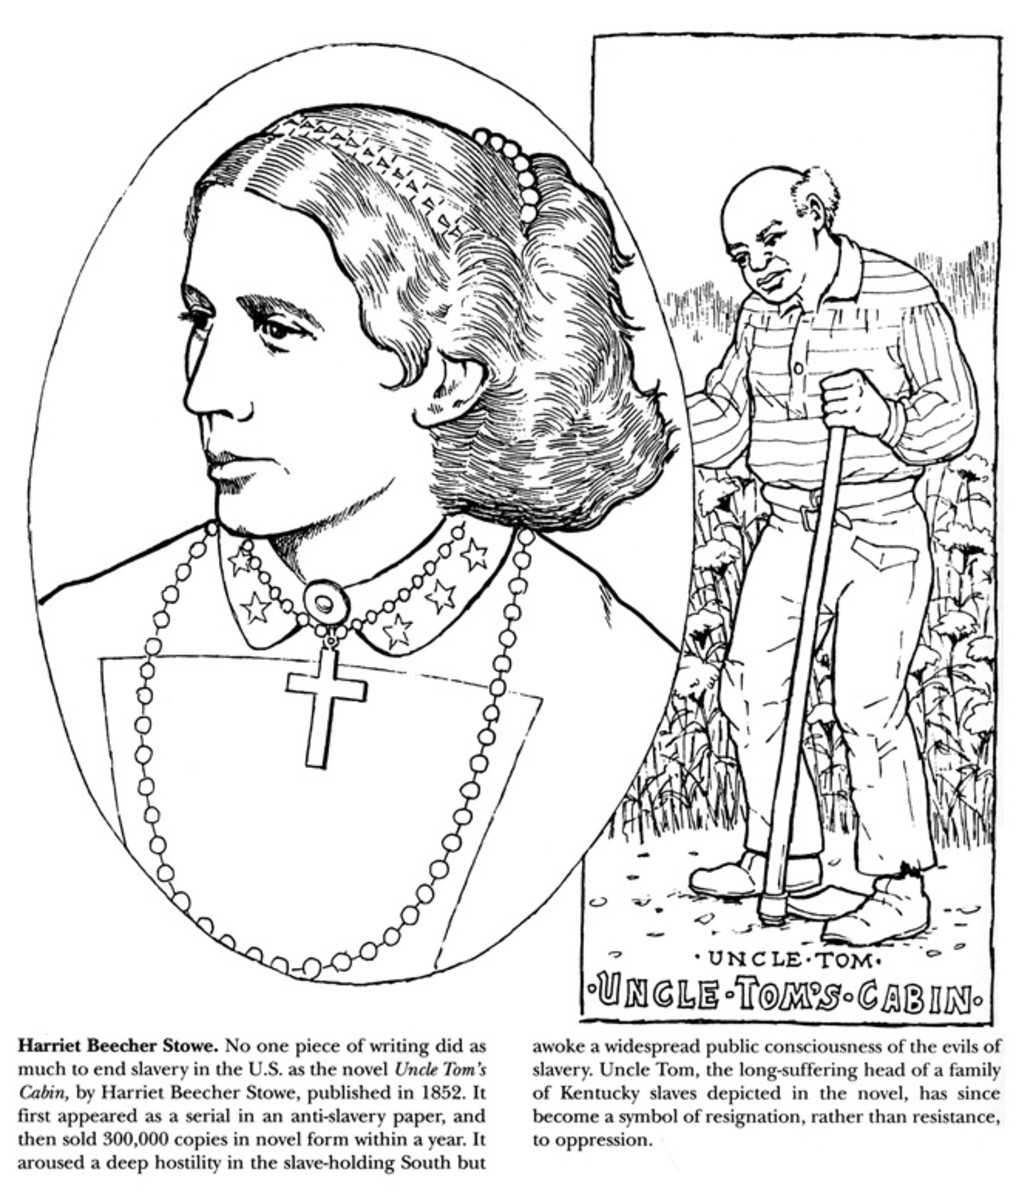 Harriet Beecher Stowe coloring page from http://www.doverpublications .com/